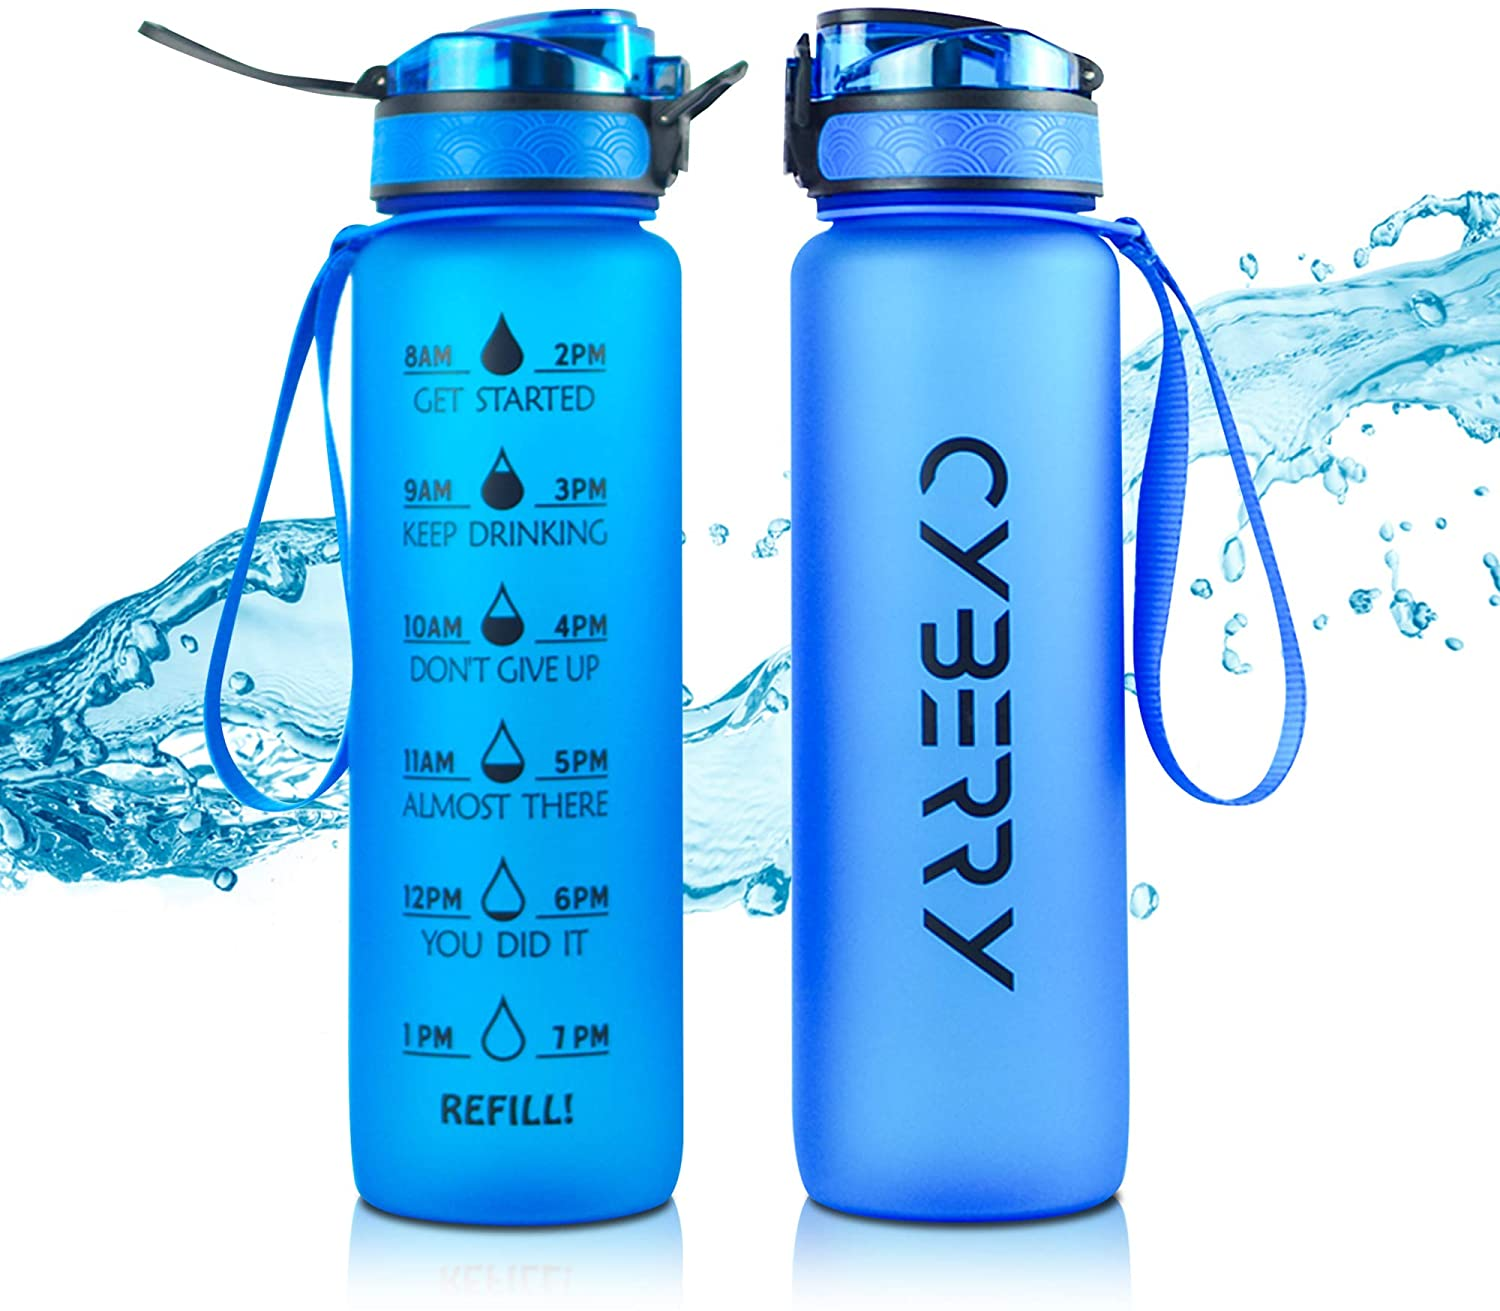 Motivational Water Bottle, 32Oz Water Bottle with Time Marker, Premium Non-BPA Leakproof Sports Fitness Bottle, Locking Lid and Optimal Water Flow, Carry Strap and Removable Filter Included